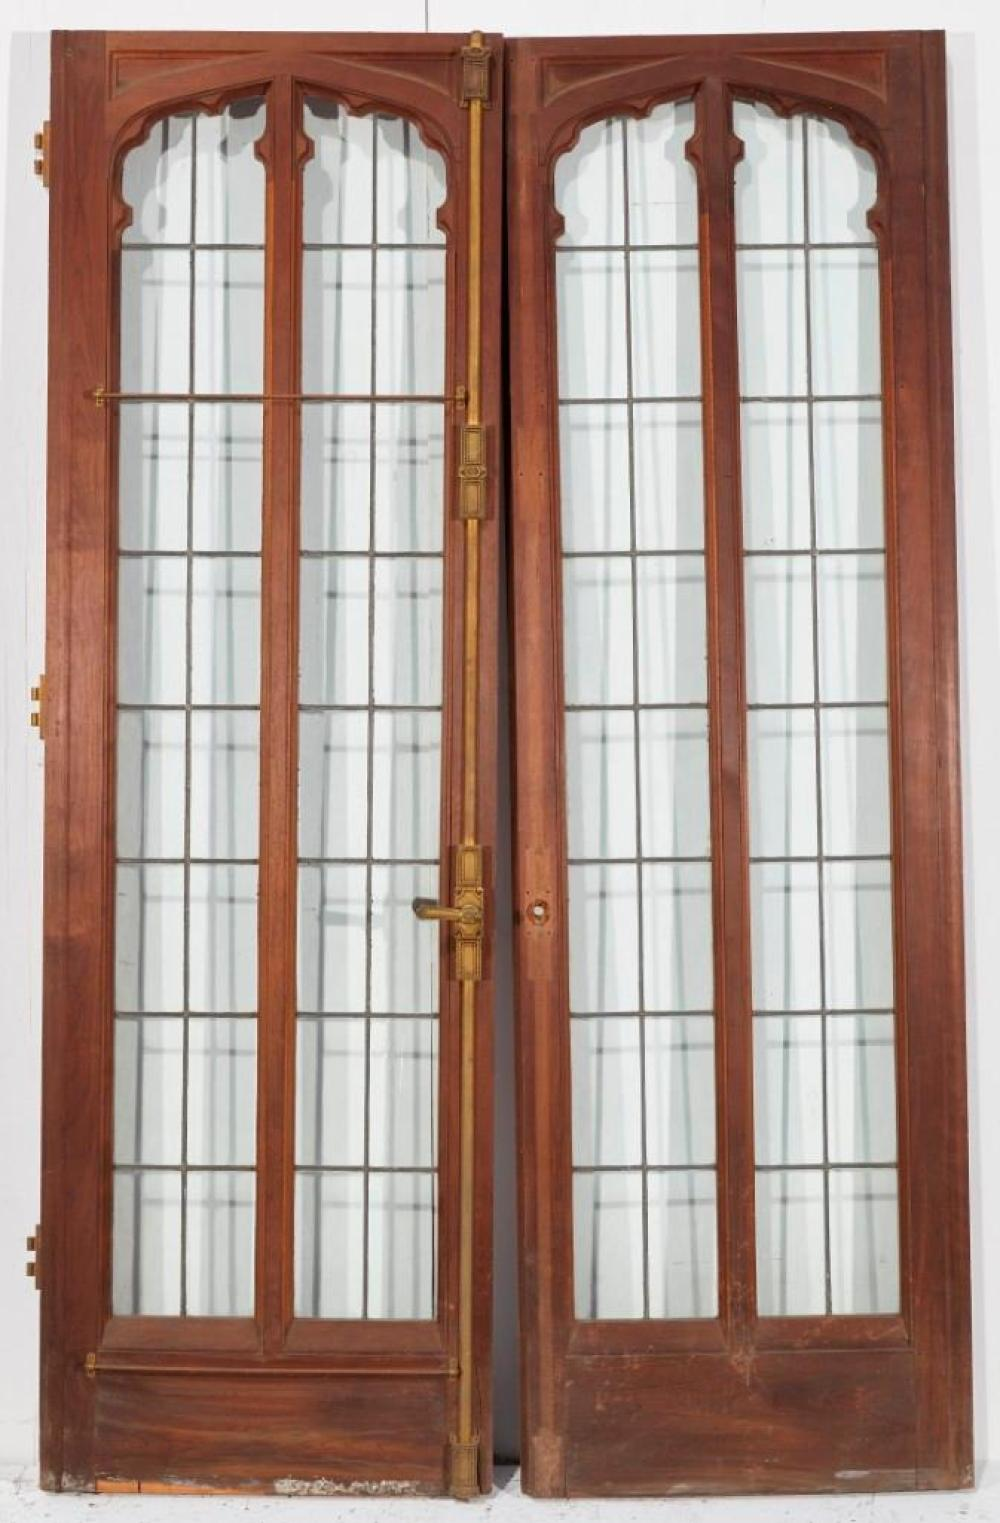 Brewster Mansion-Interior 2 part door with leaded glass